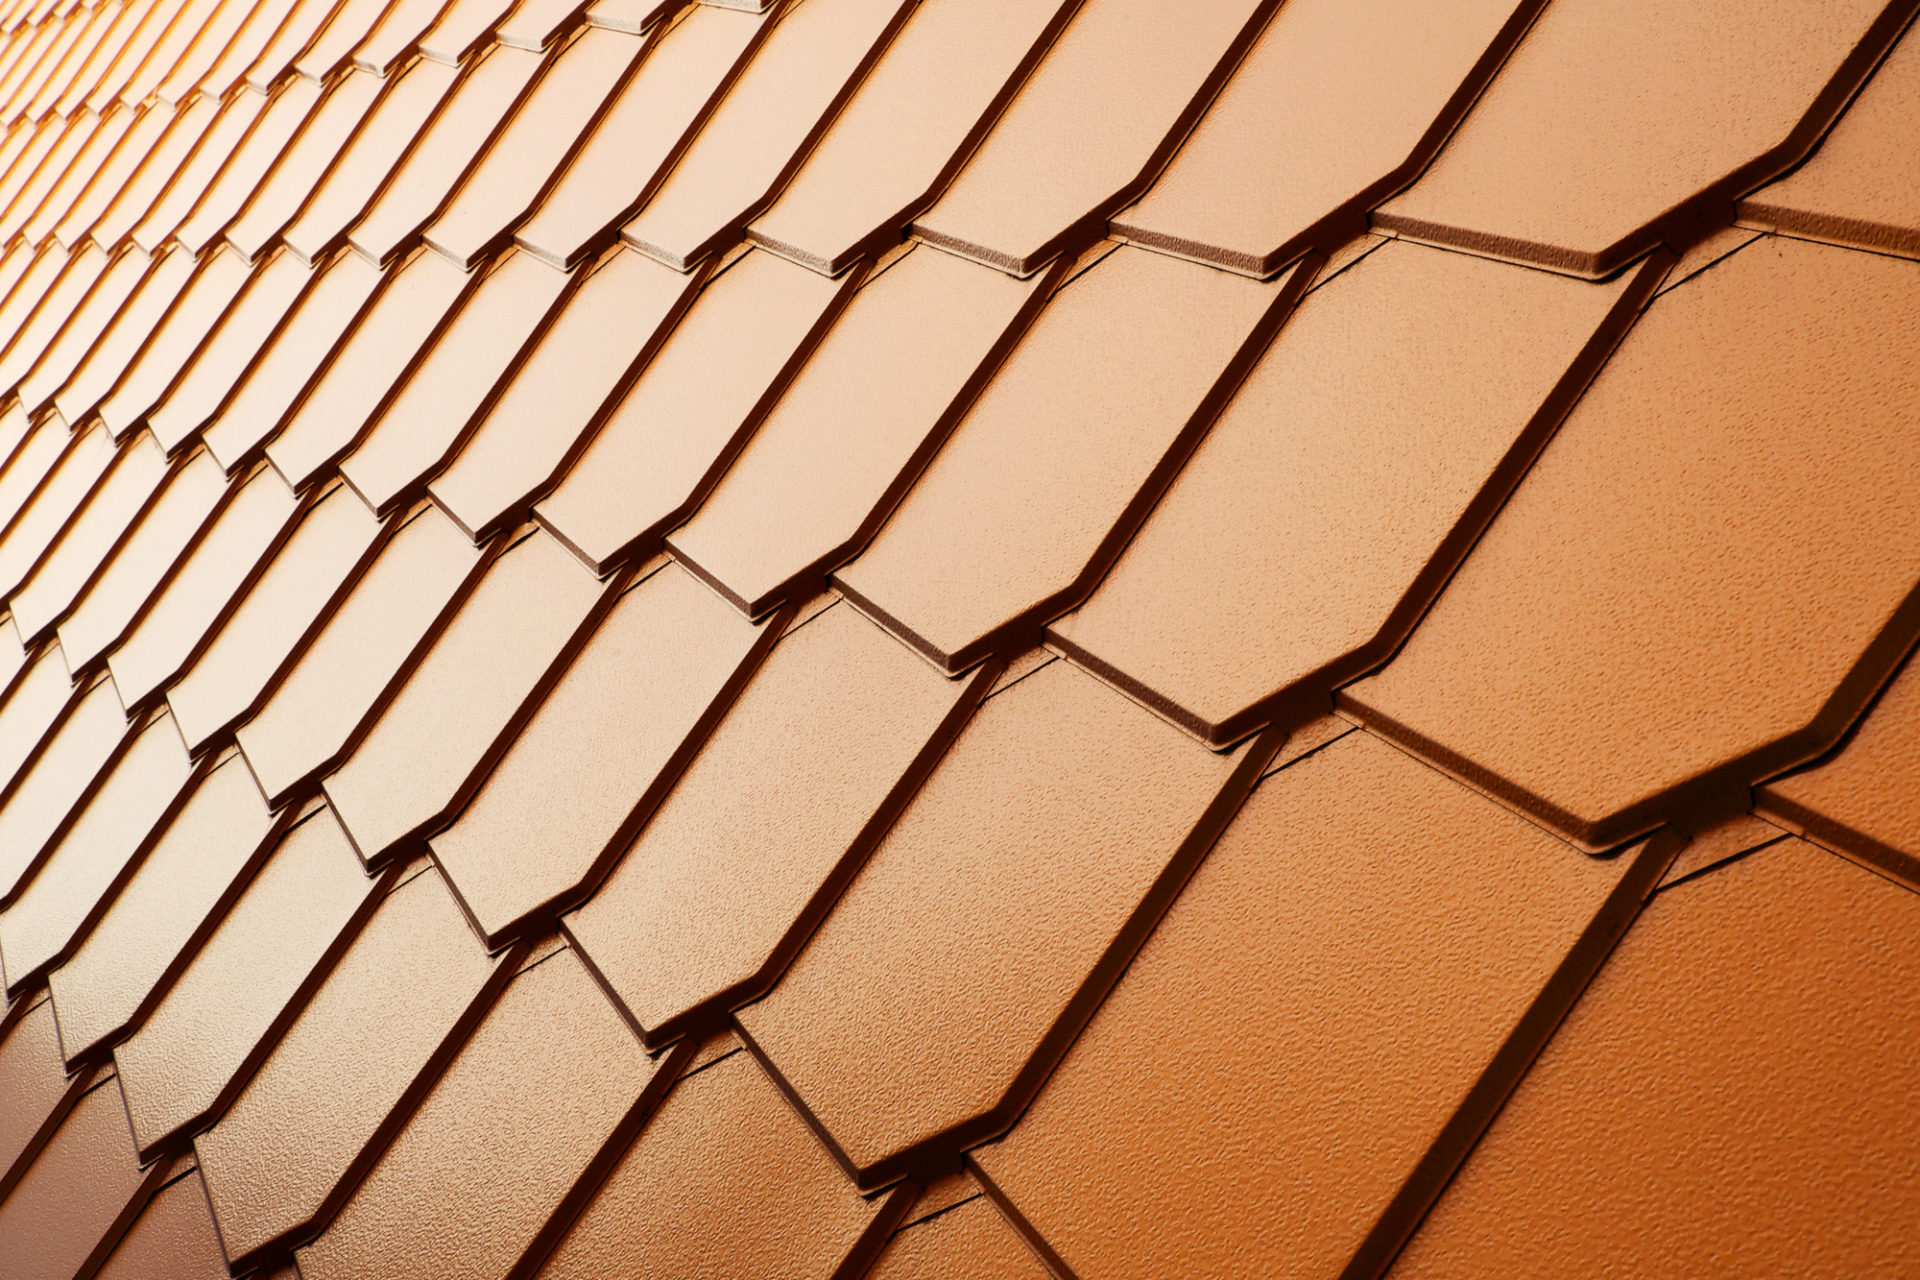 Copper Tile Wall Erie Metal Roofs